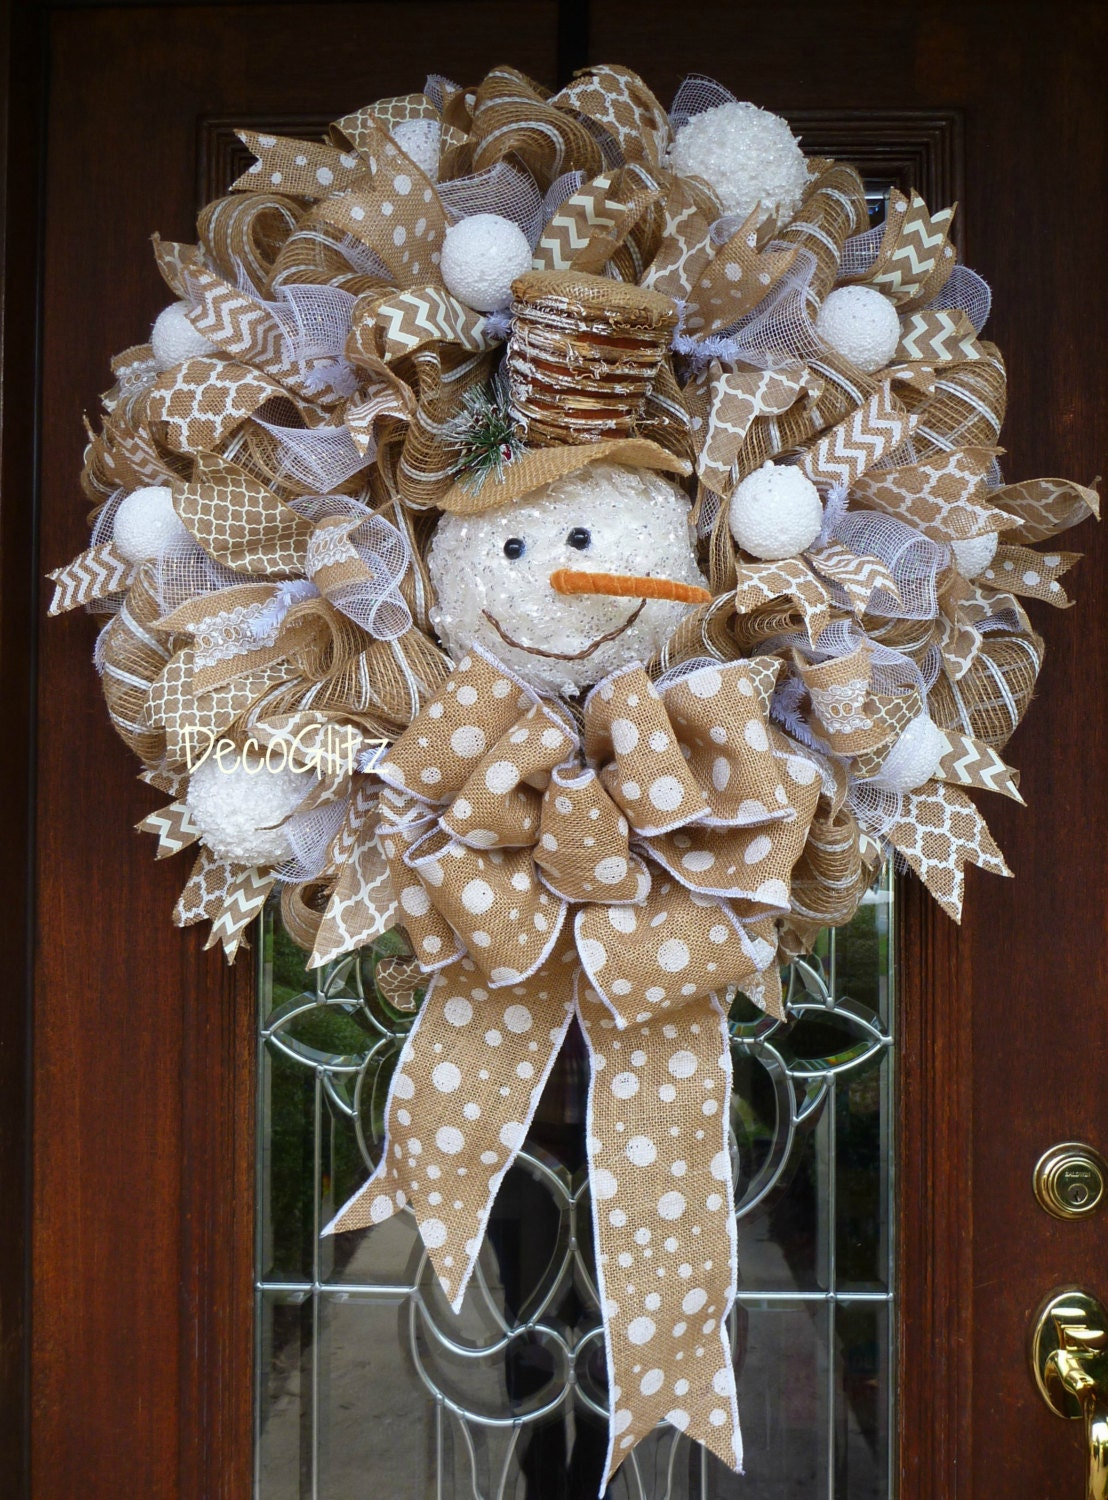 Snowman christmas wreath on burlap by decoglitz on etsy for Snowman made out of burlap